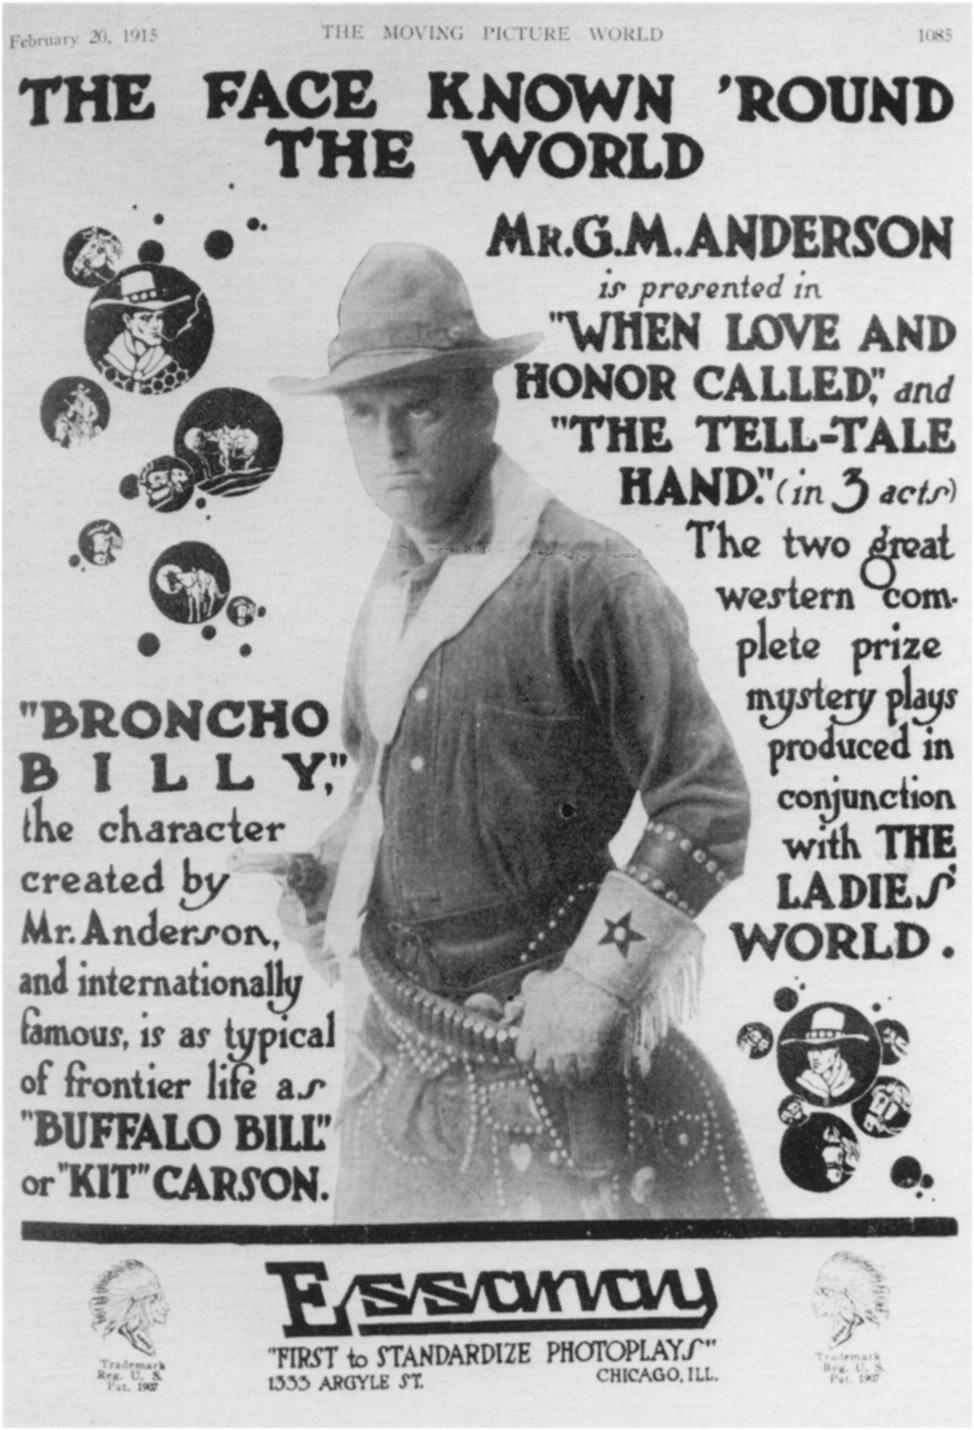 1915 advertisement for Anderson's Bronco Billy movies. Geoffrey Bell Collection